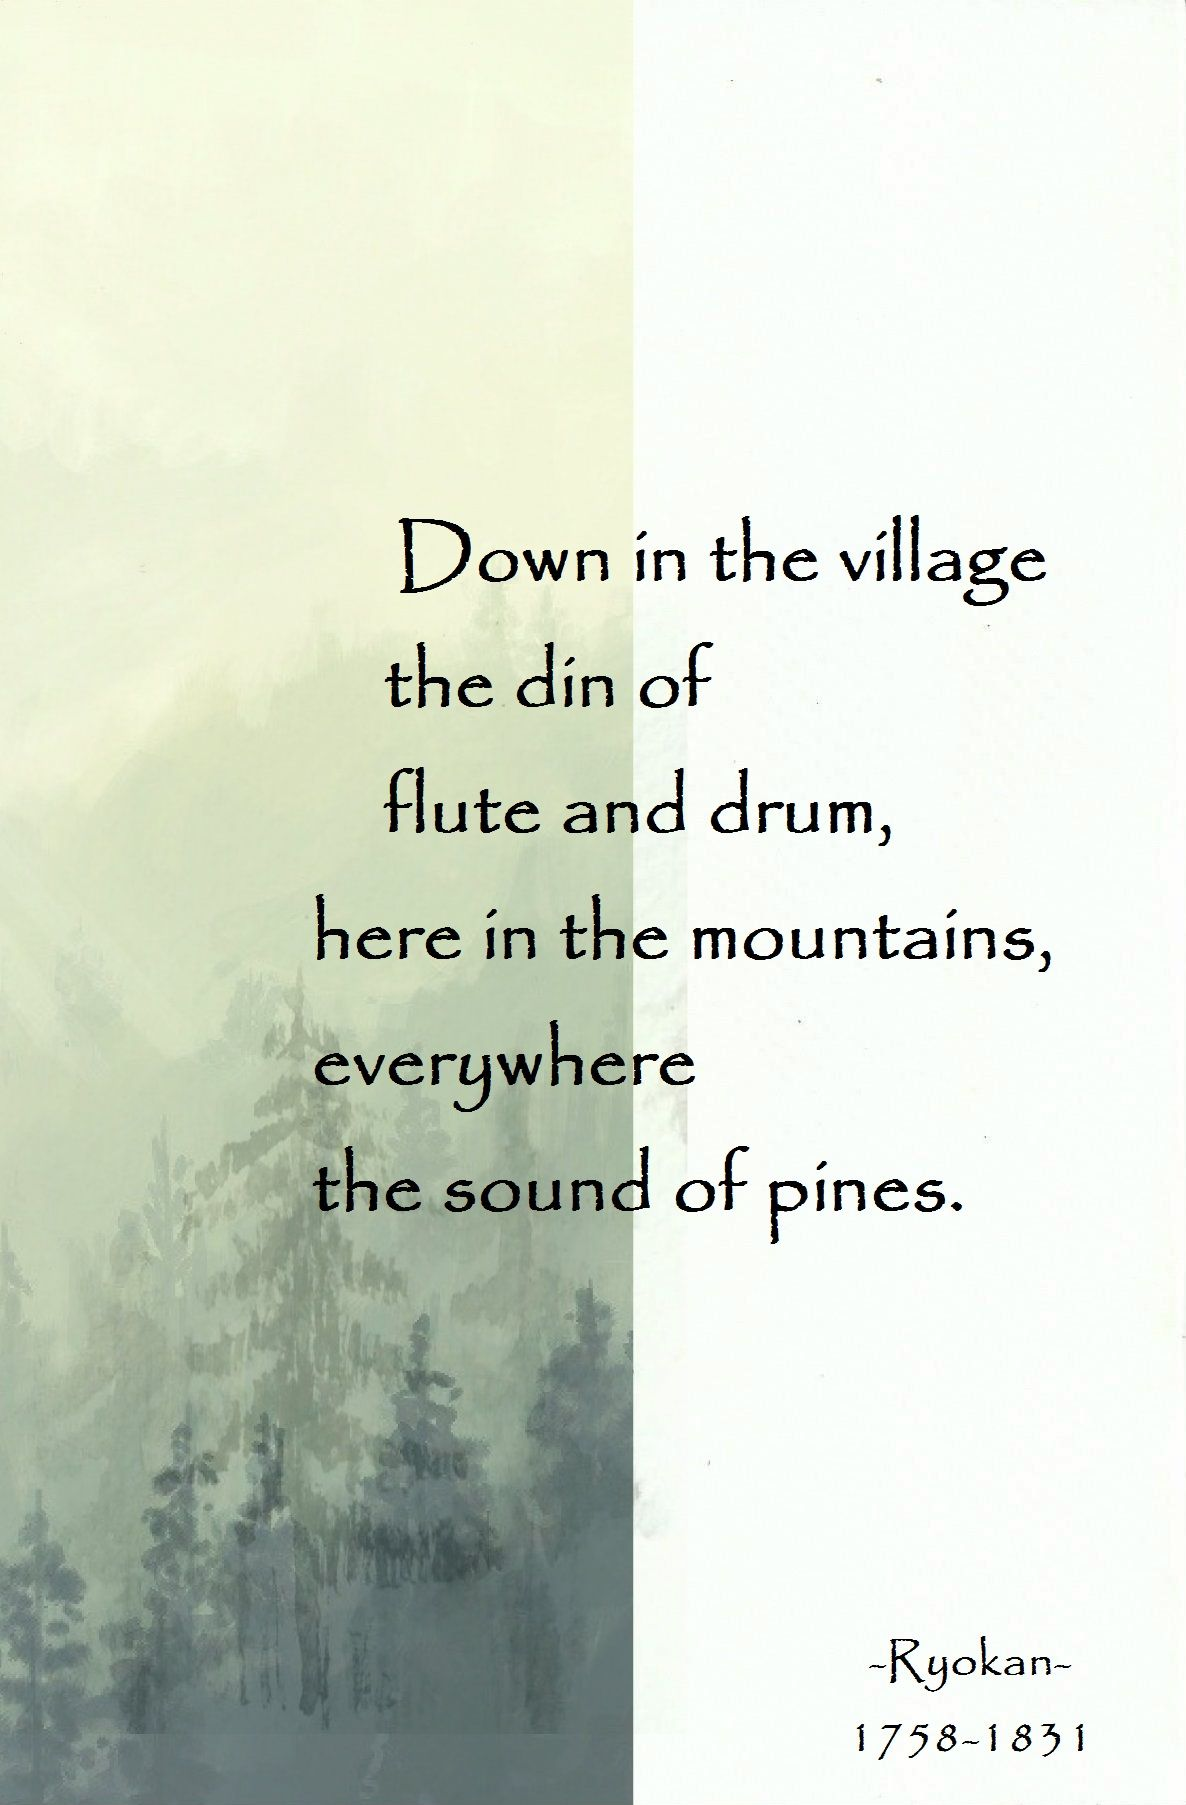 Here in the mountains, everywhere the sound of pines